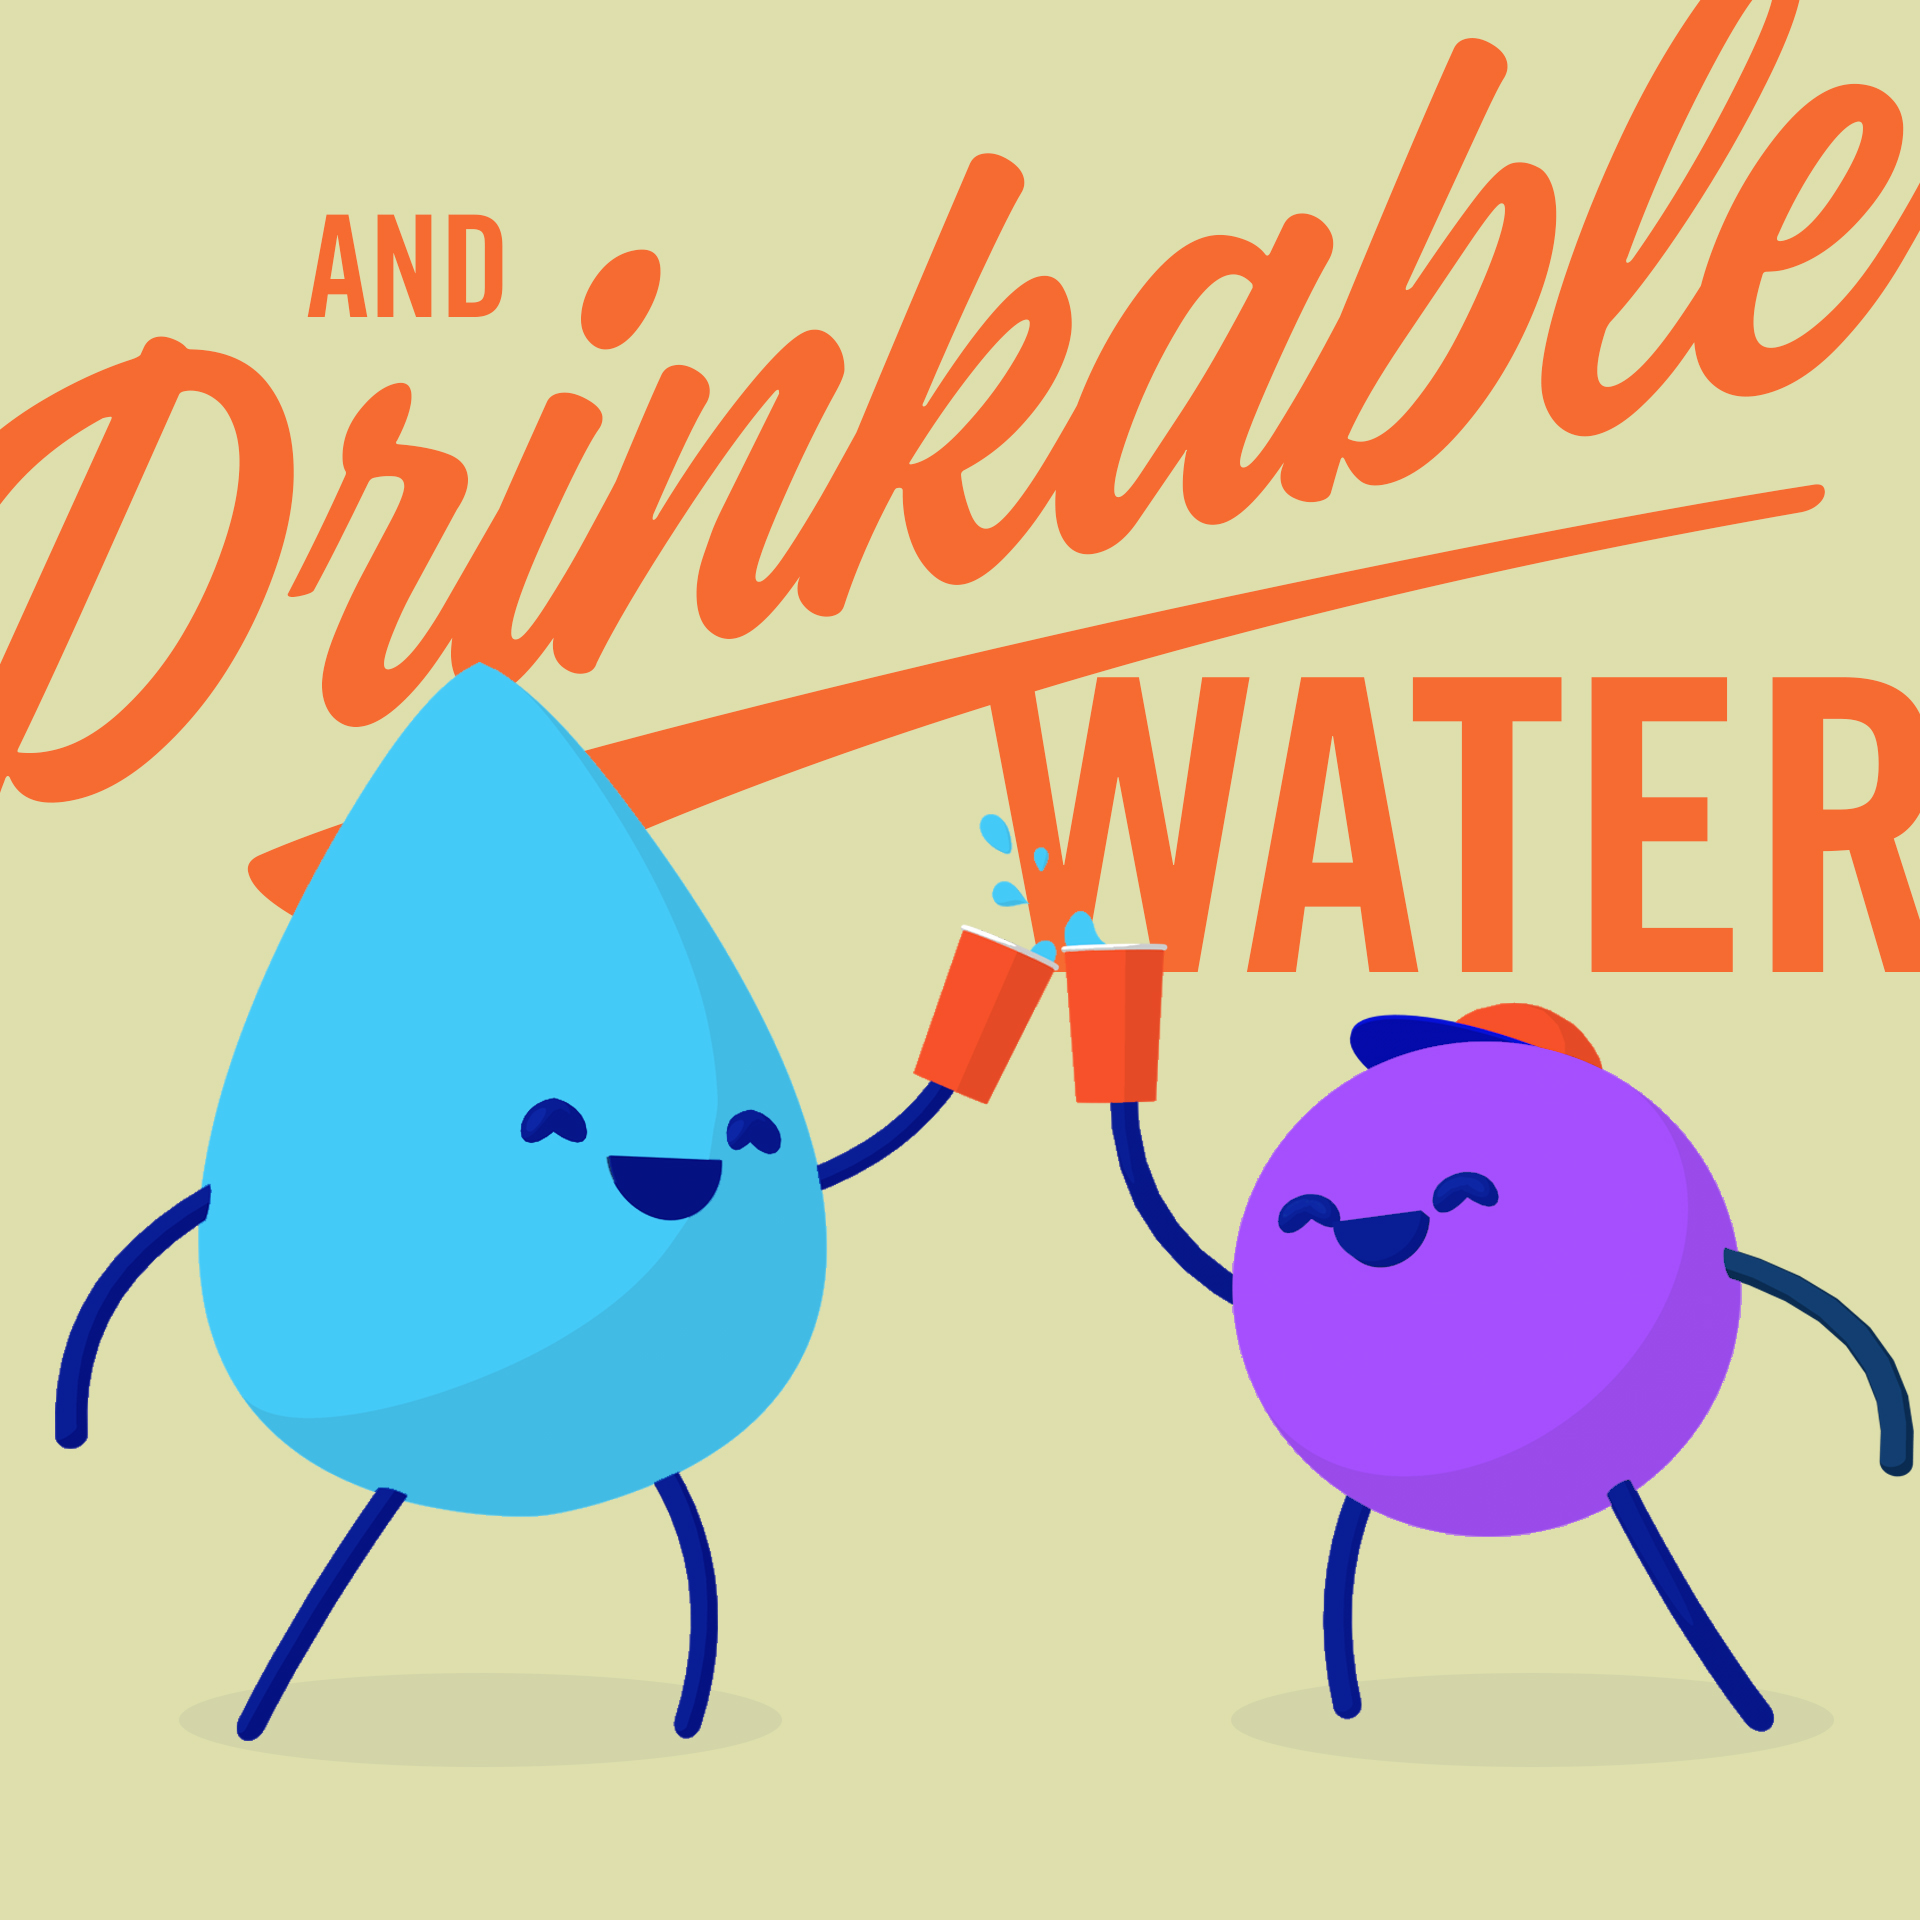 Jimmy and Droppy clinking cups with text that reads 'and drinkable water'